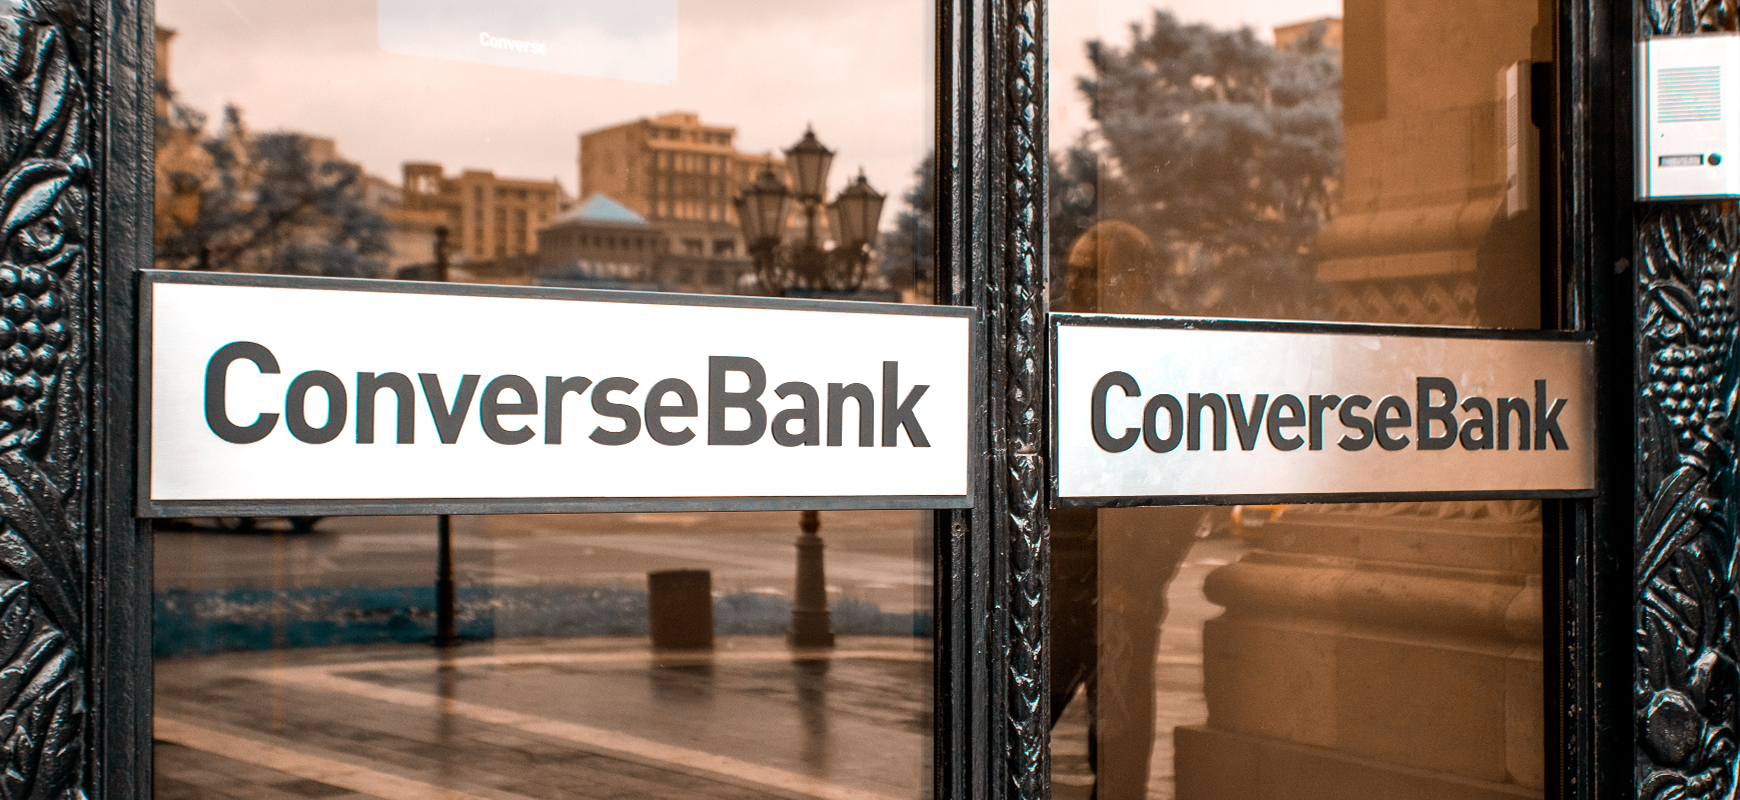 Converse Bank signage displaying the brand name made of aluminum